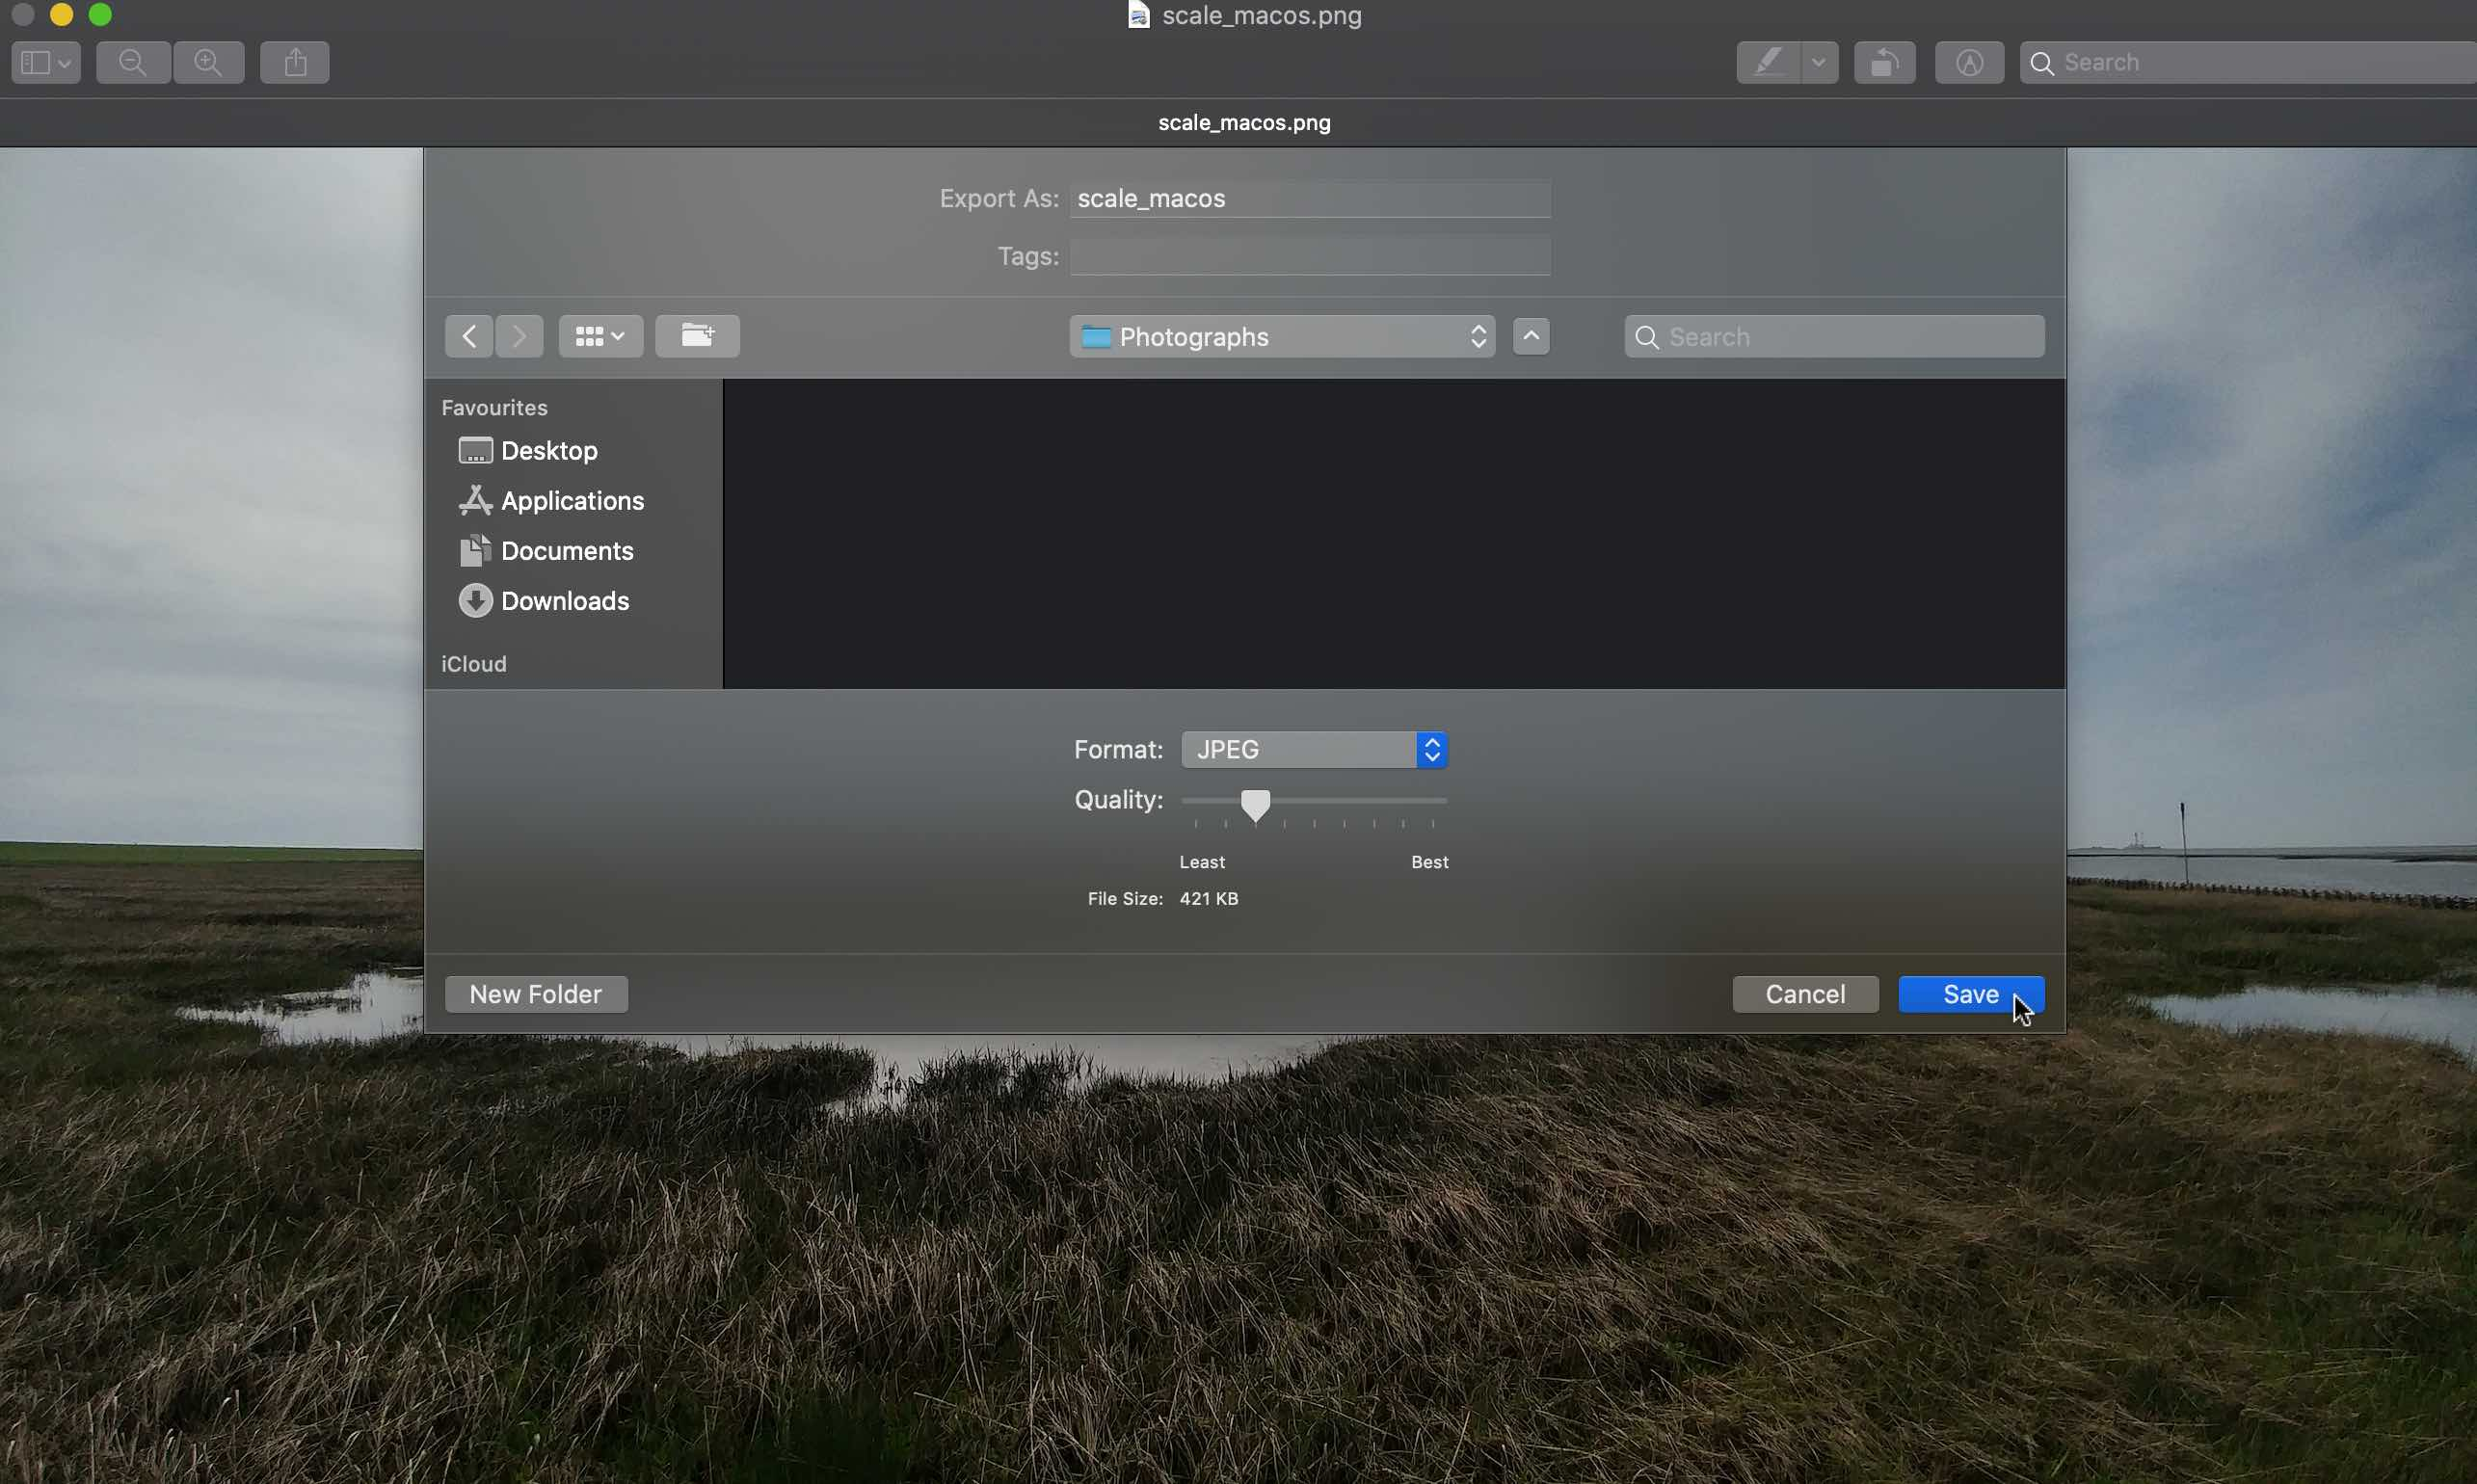 MacOS save image file with lower quality in preview